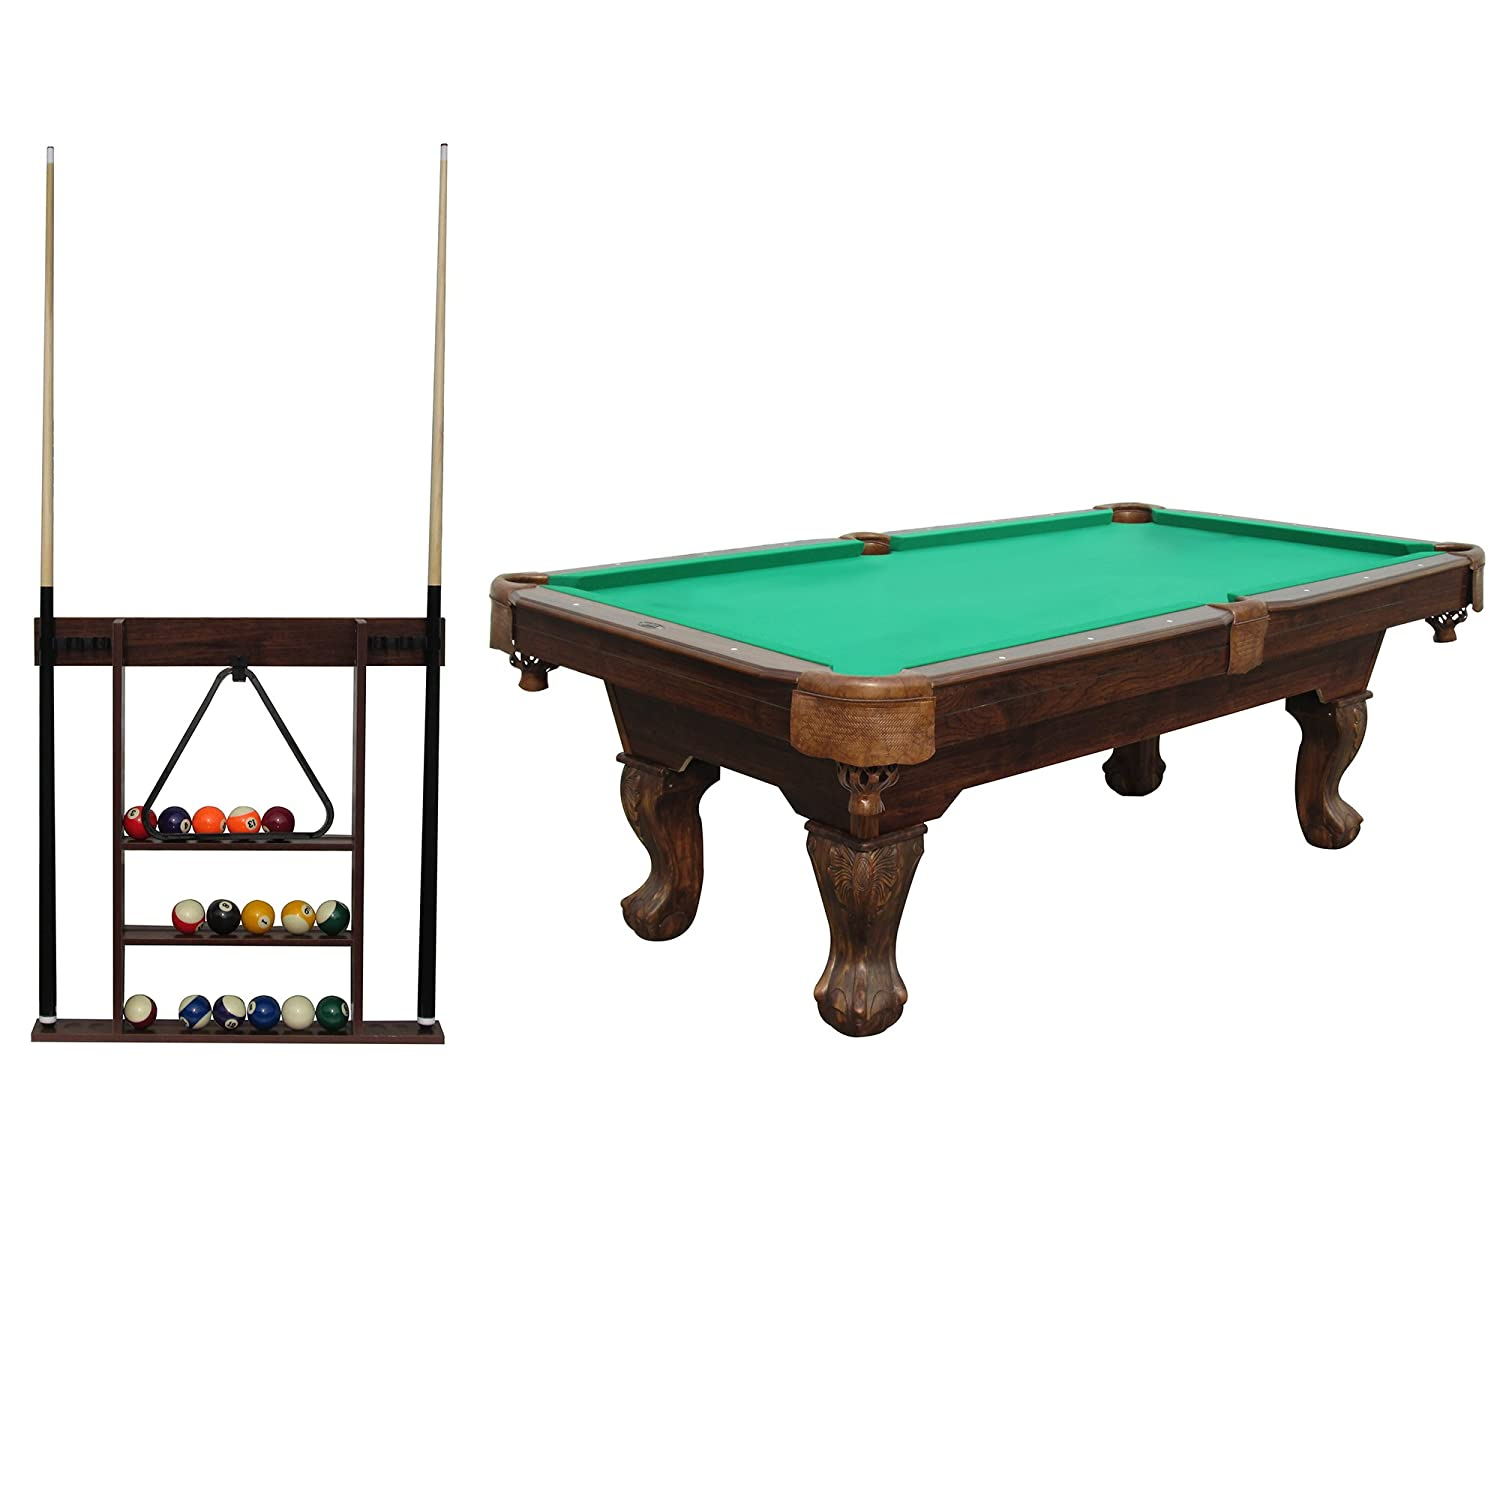 Amazoncom MD Sports Sportcraft Foot Ball And Claw Billiard - How much room do you need for a pool table